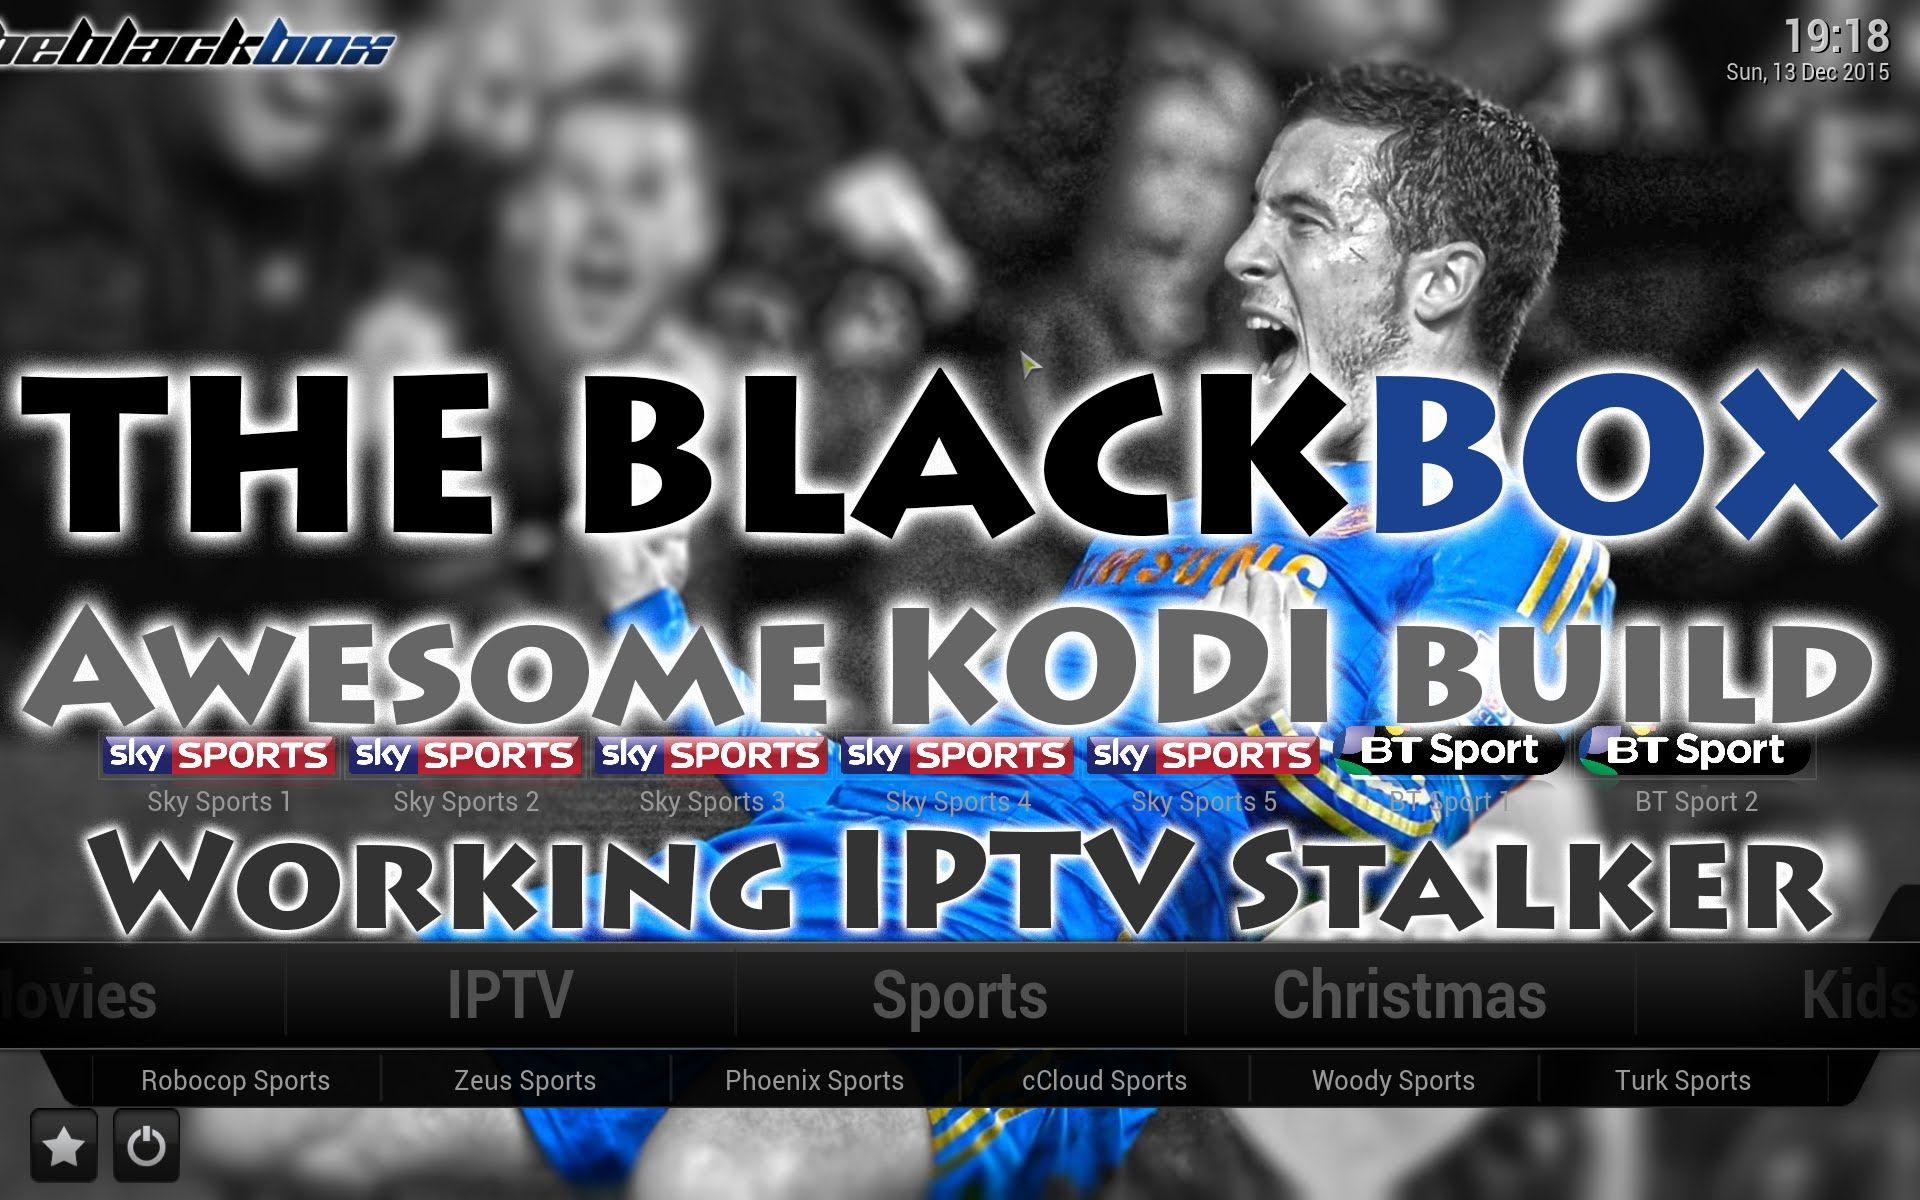 How to install BlackBox Build on KODI working iptv stalker